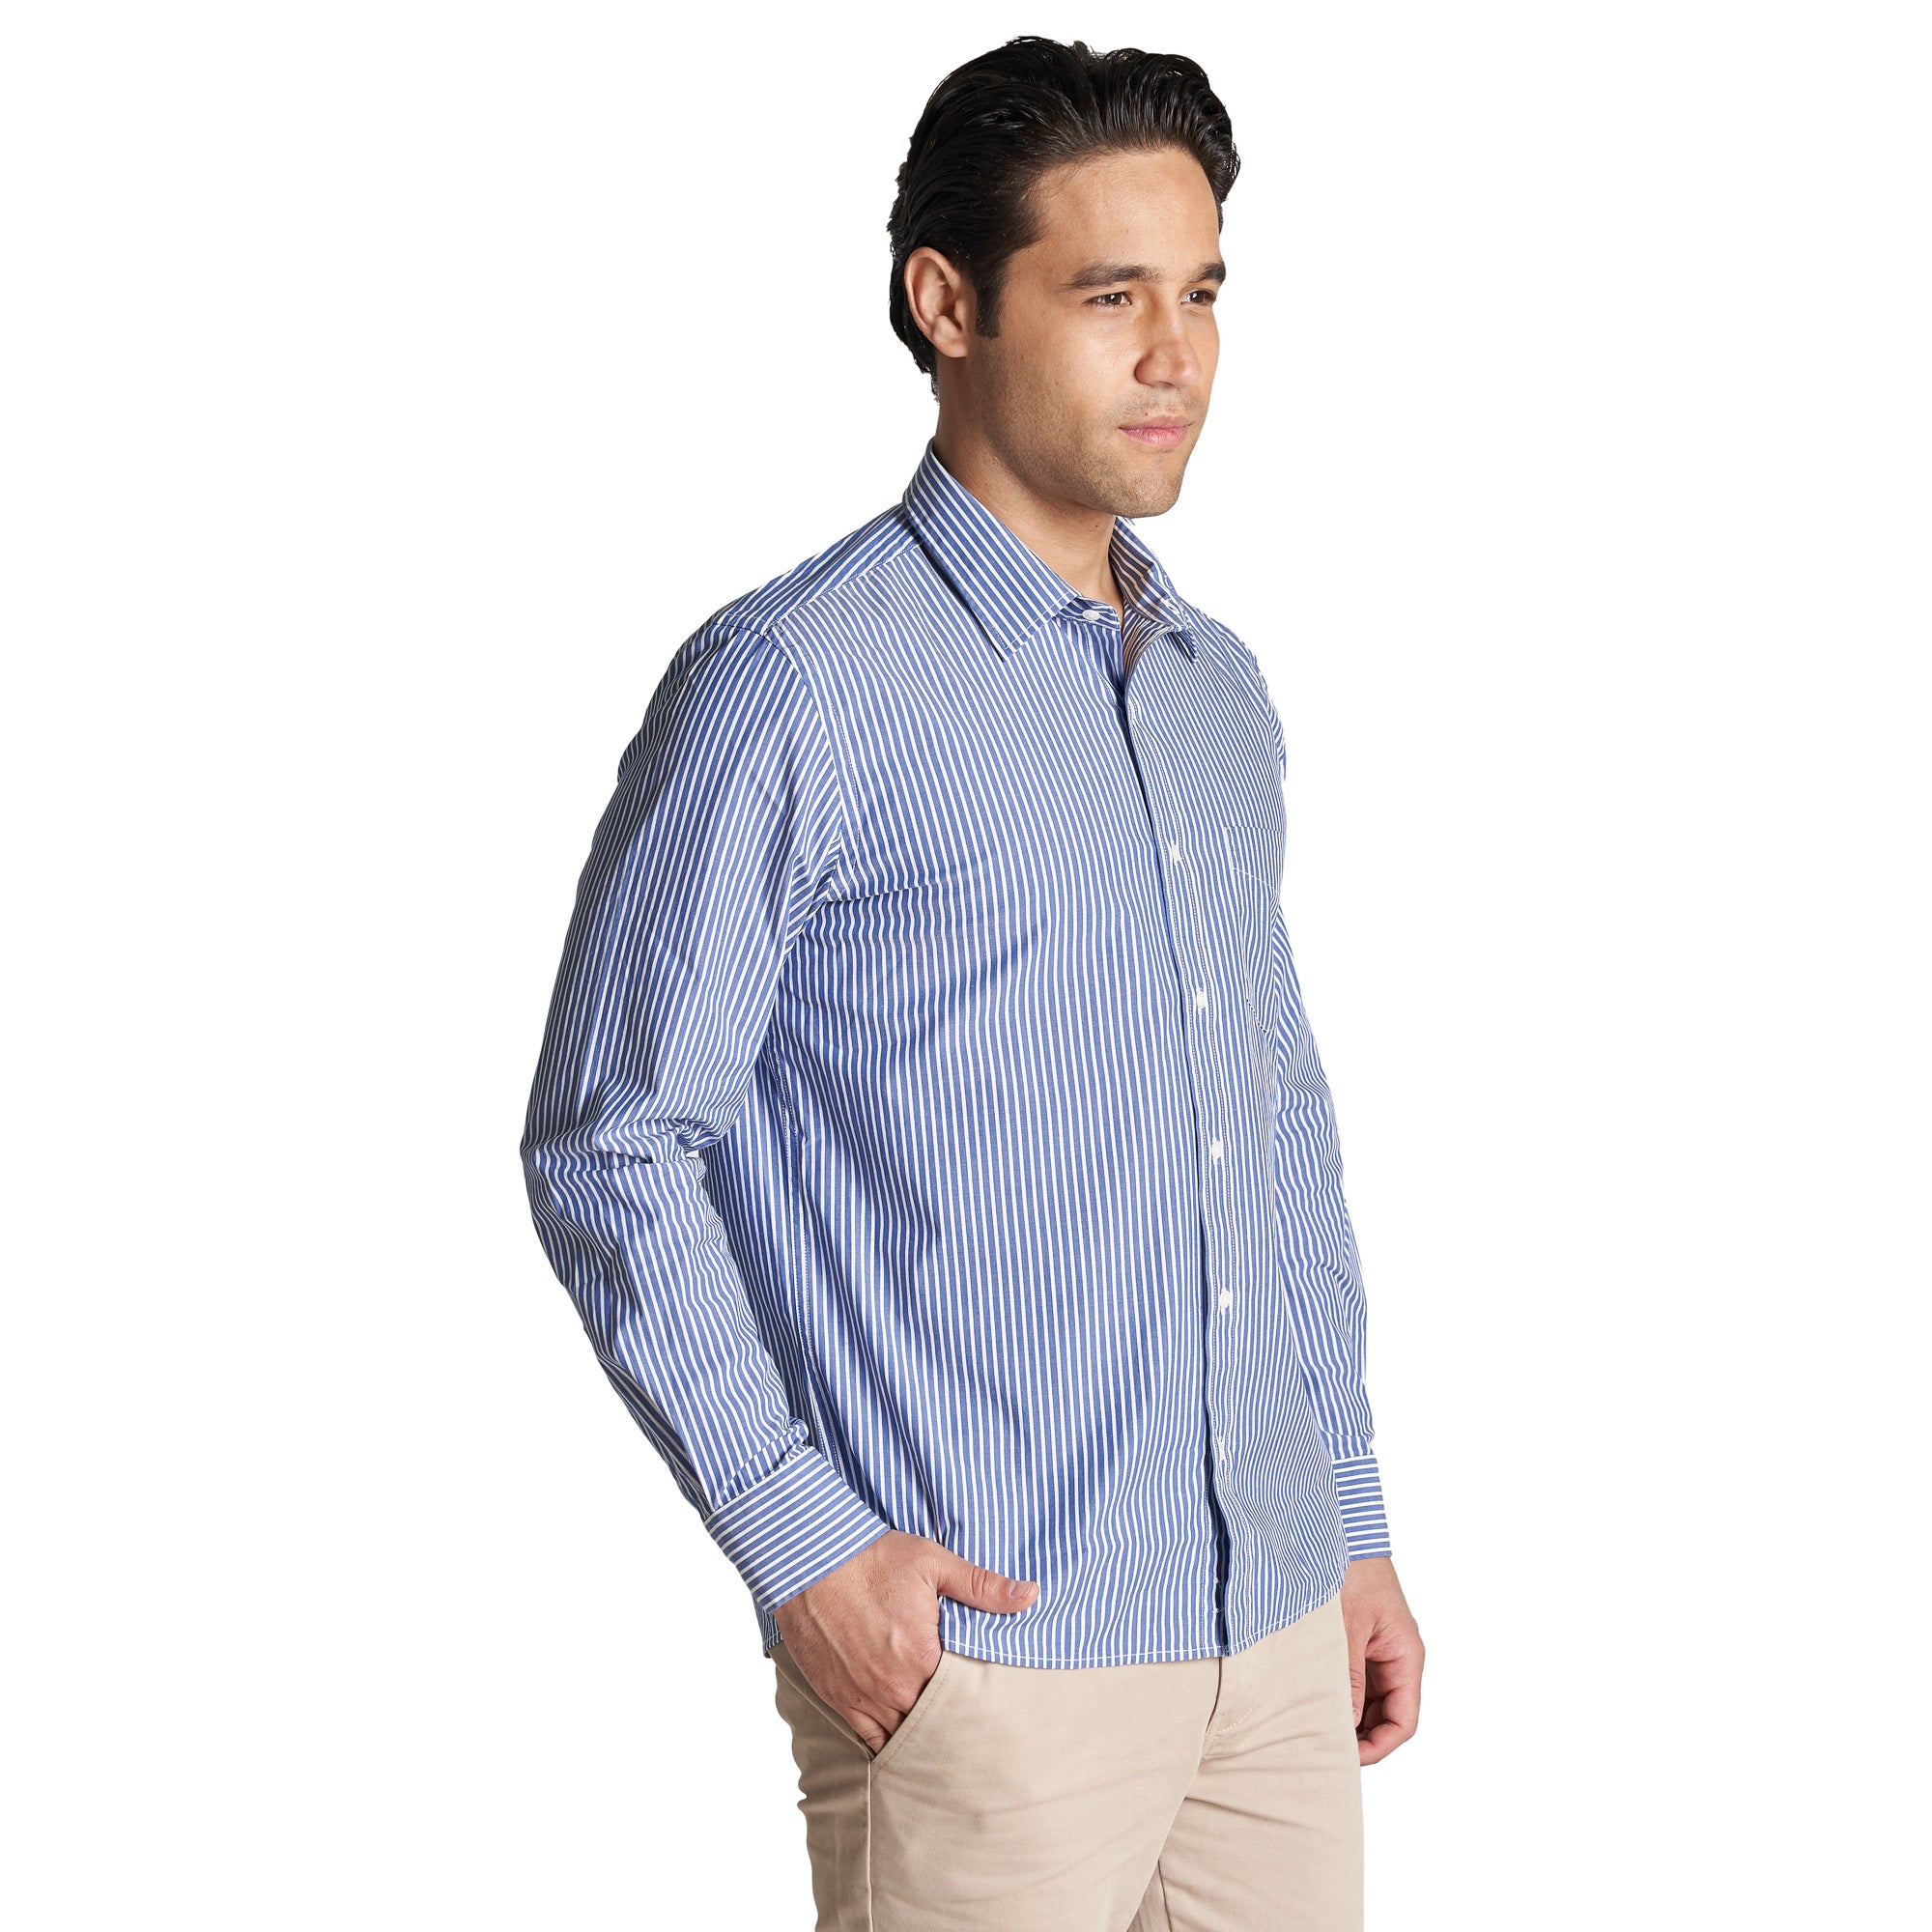 Everyday Stretch Shirts - Navy Stripe